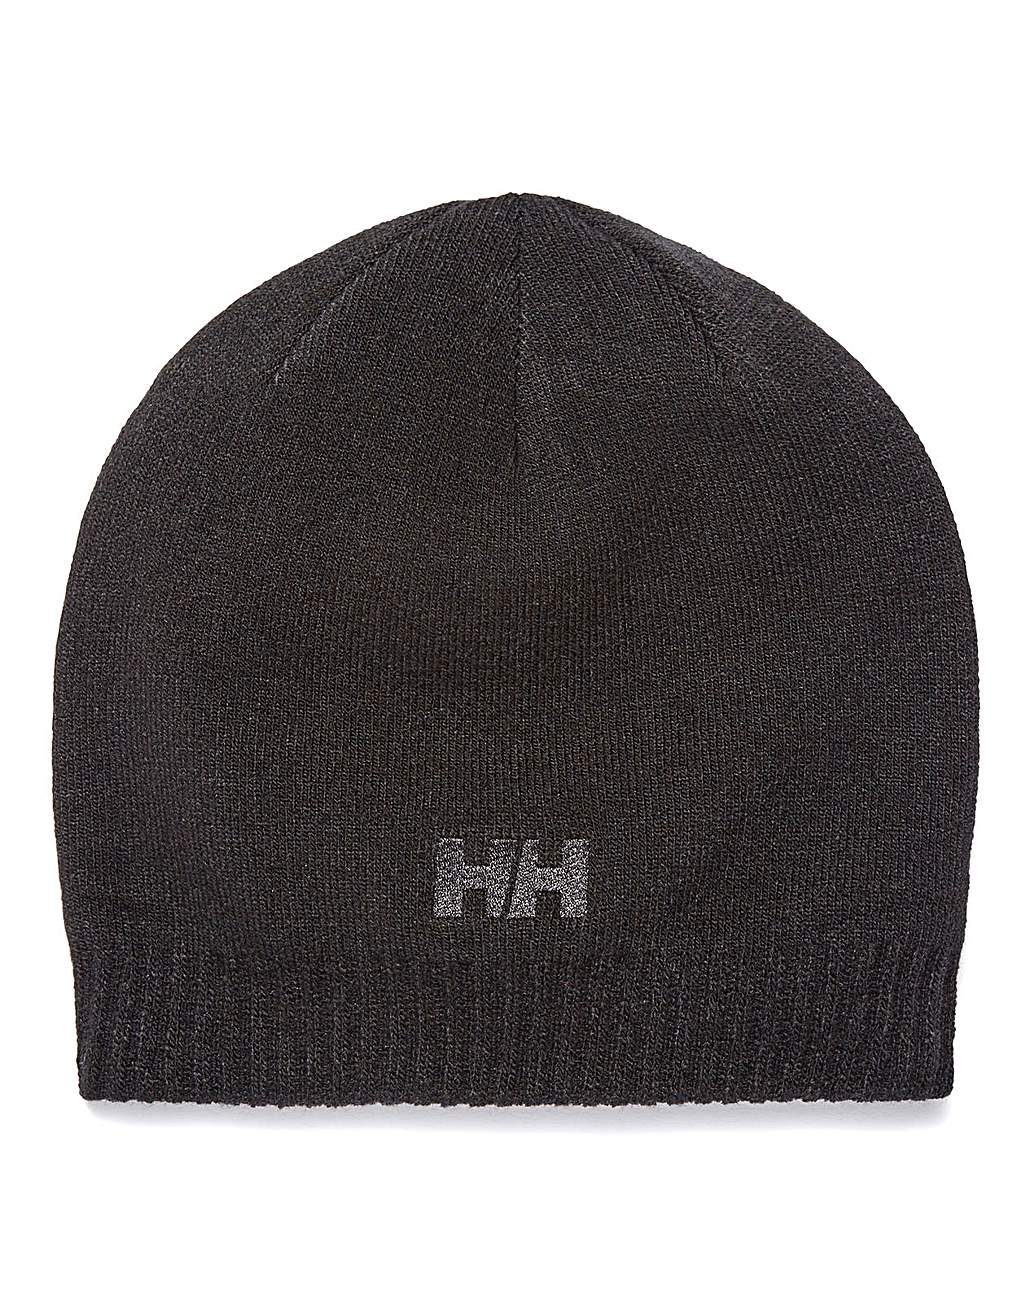 Helly Hansen Branded Beanie